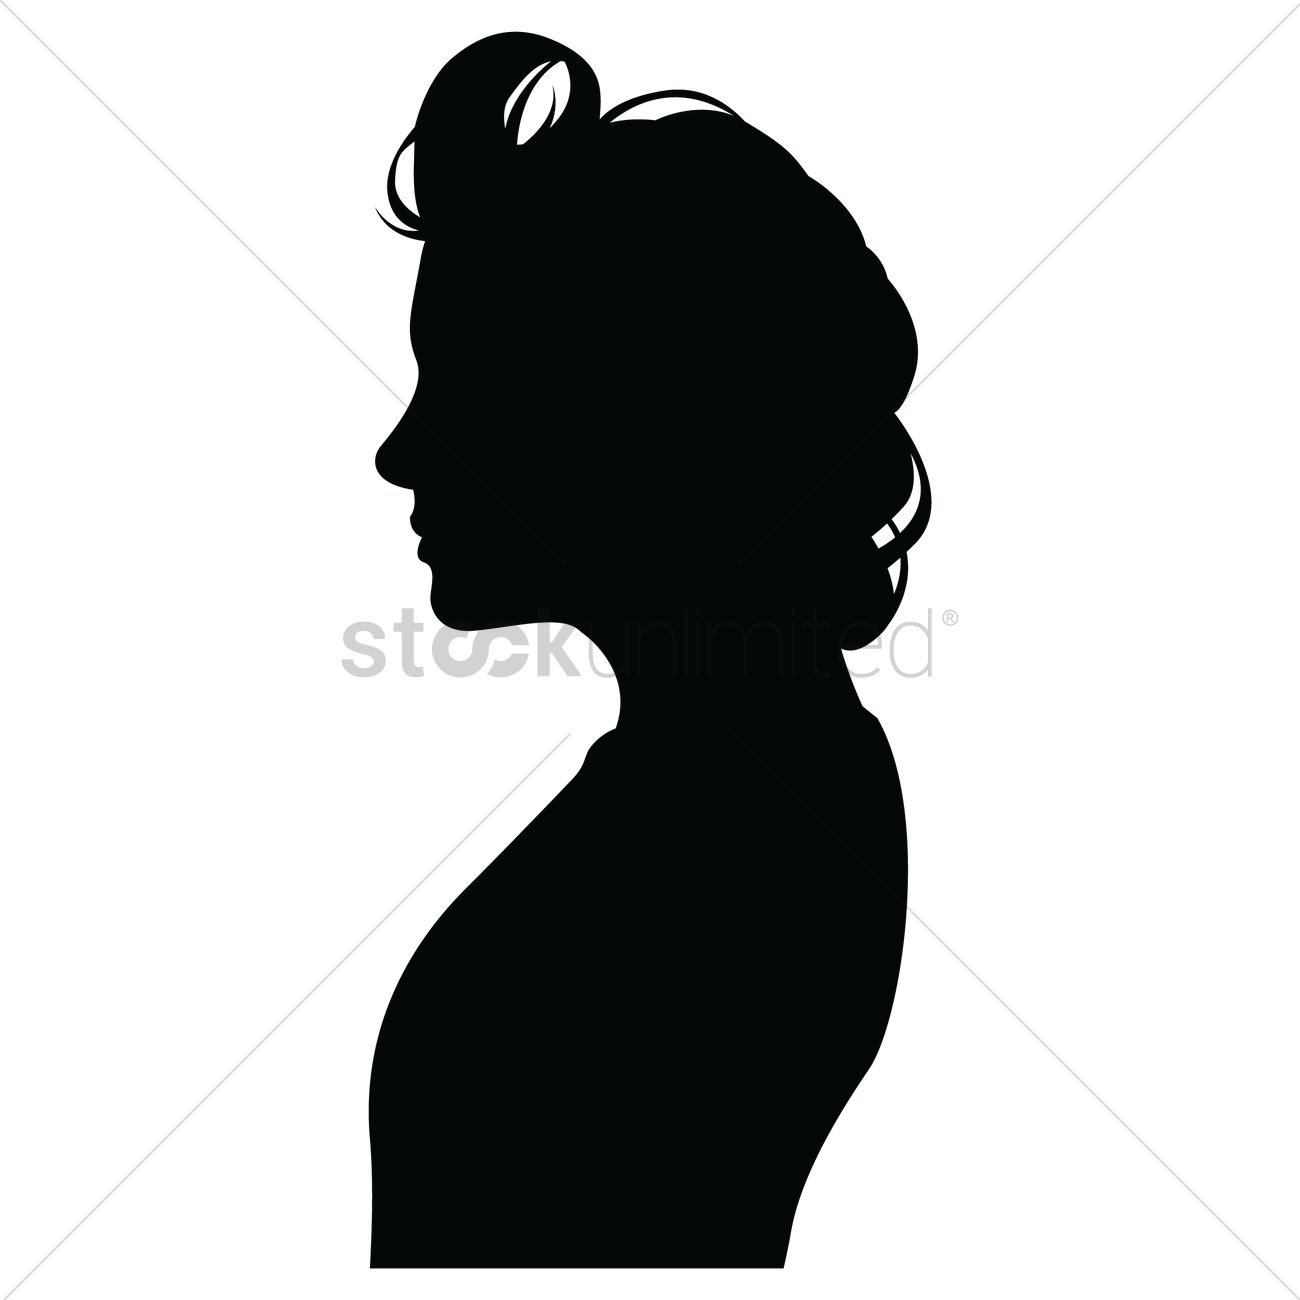 Silhouette Silhouettes Human Humans People Person Head Heads Half.